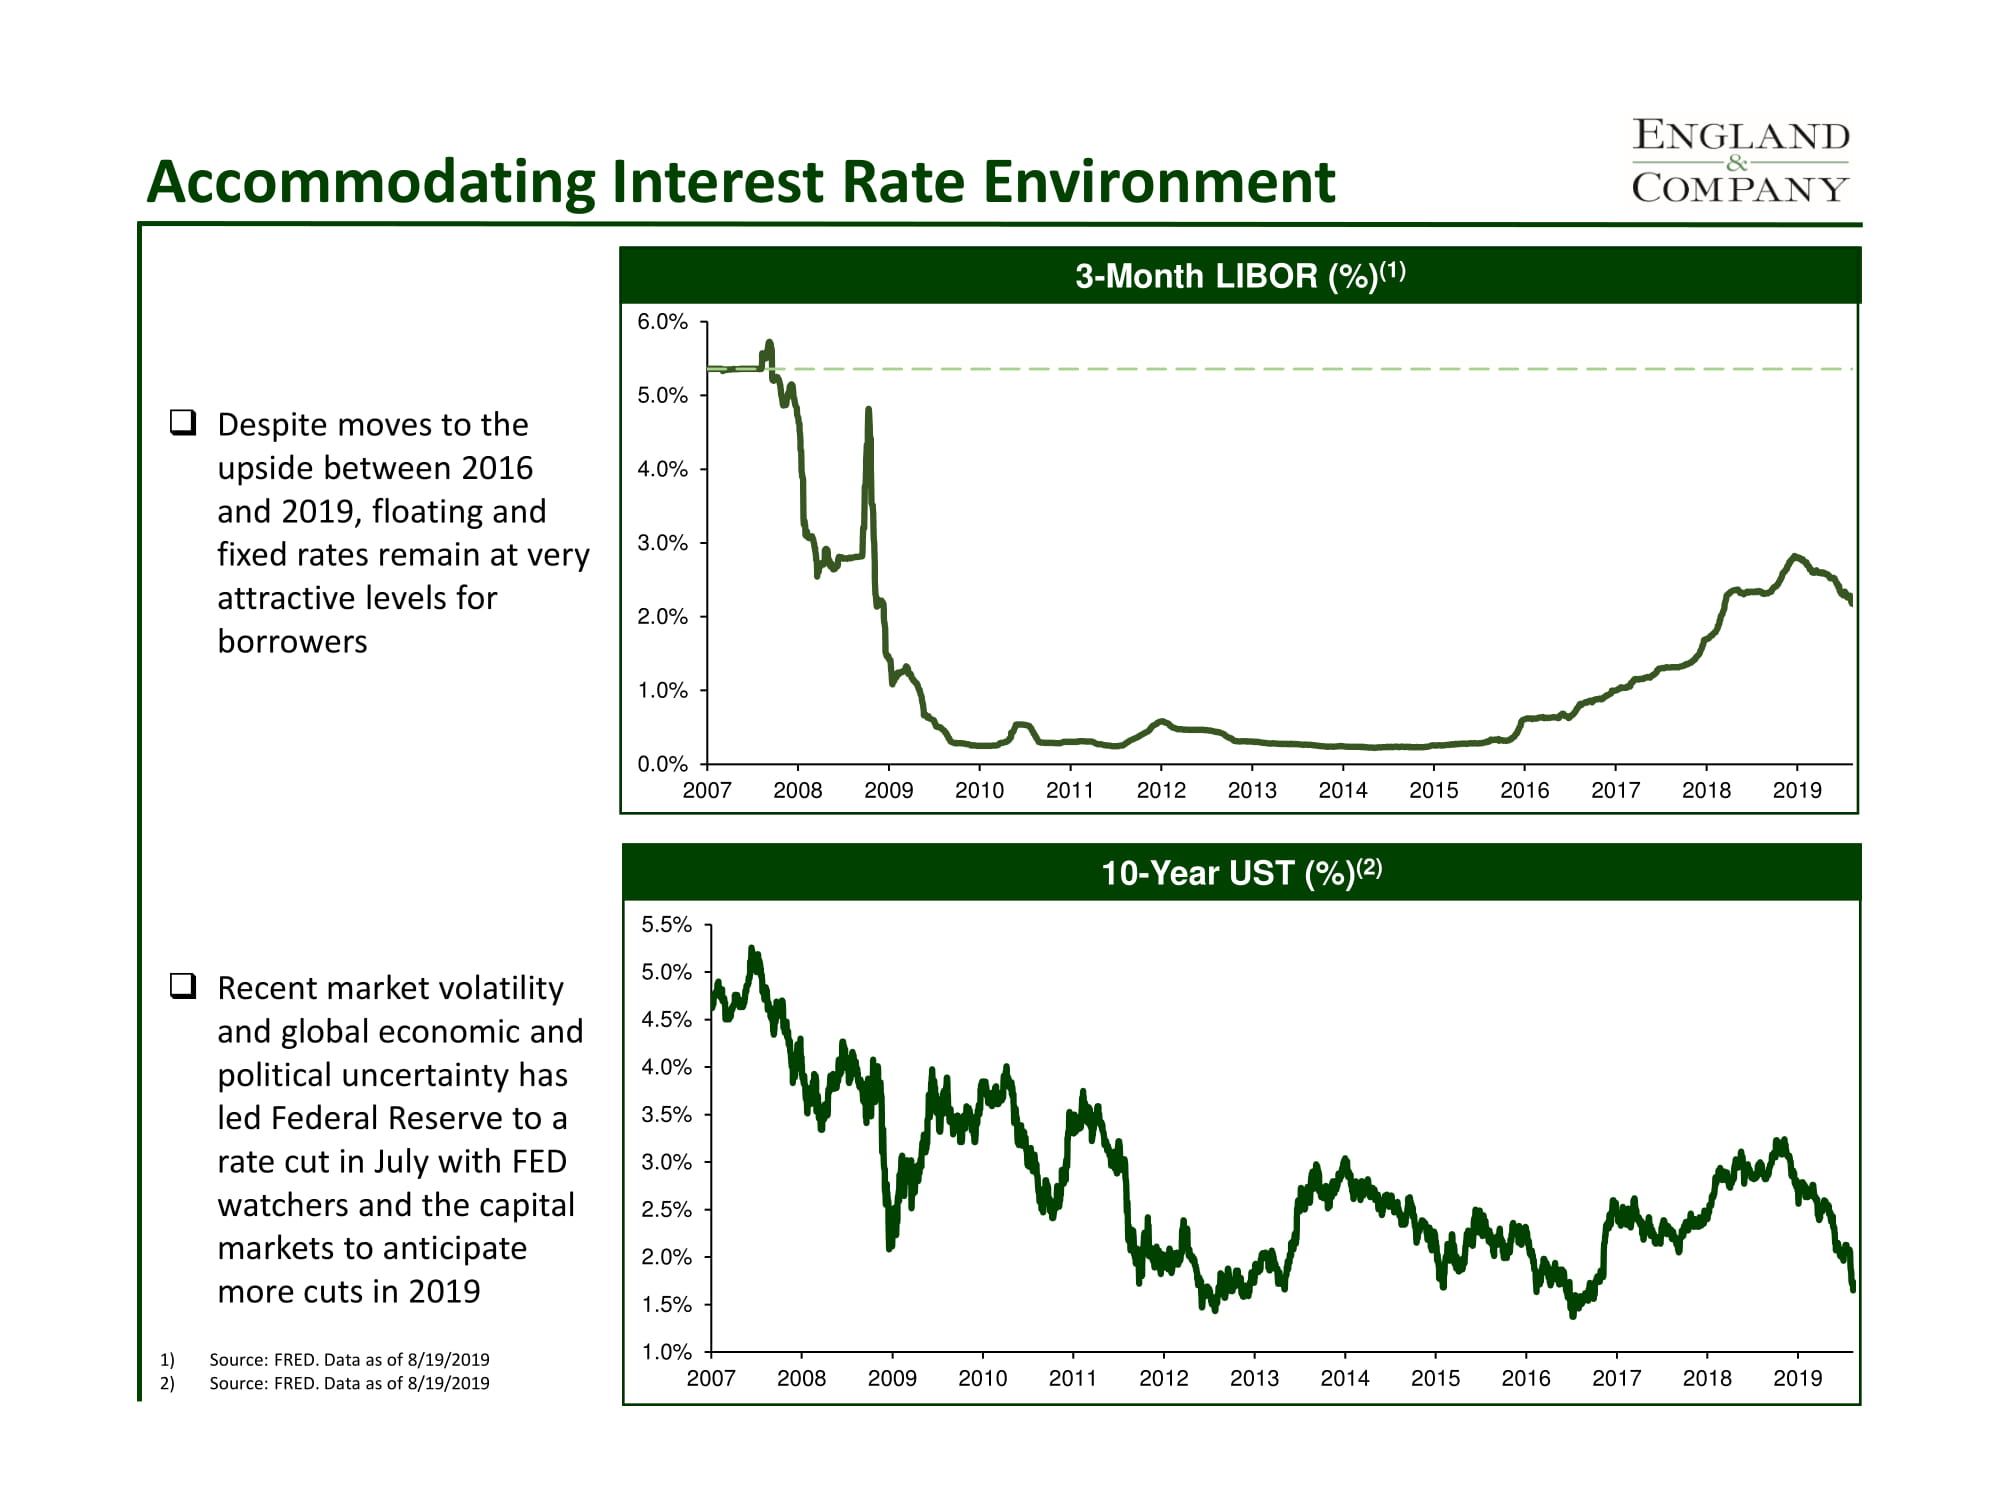 Accommodating Interest Rate Environment (August 2019)-1.jpg